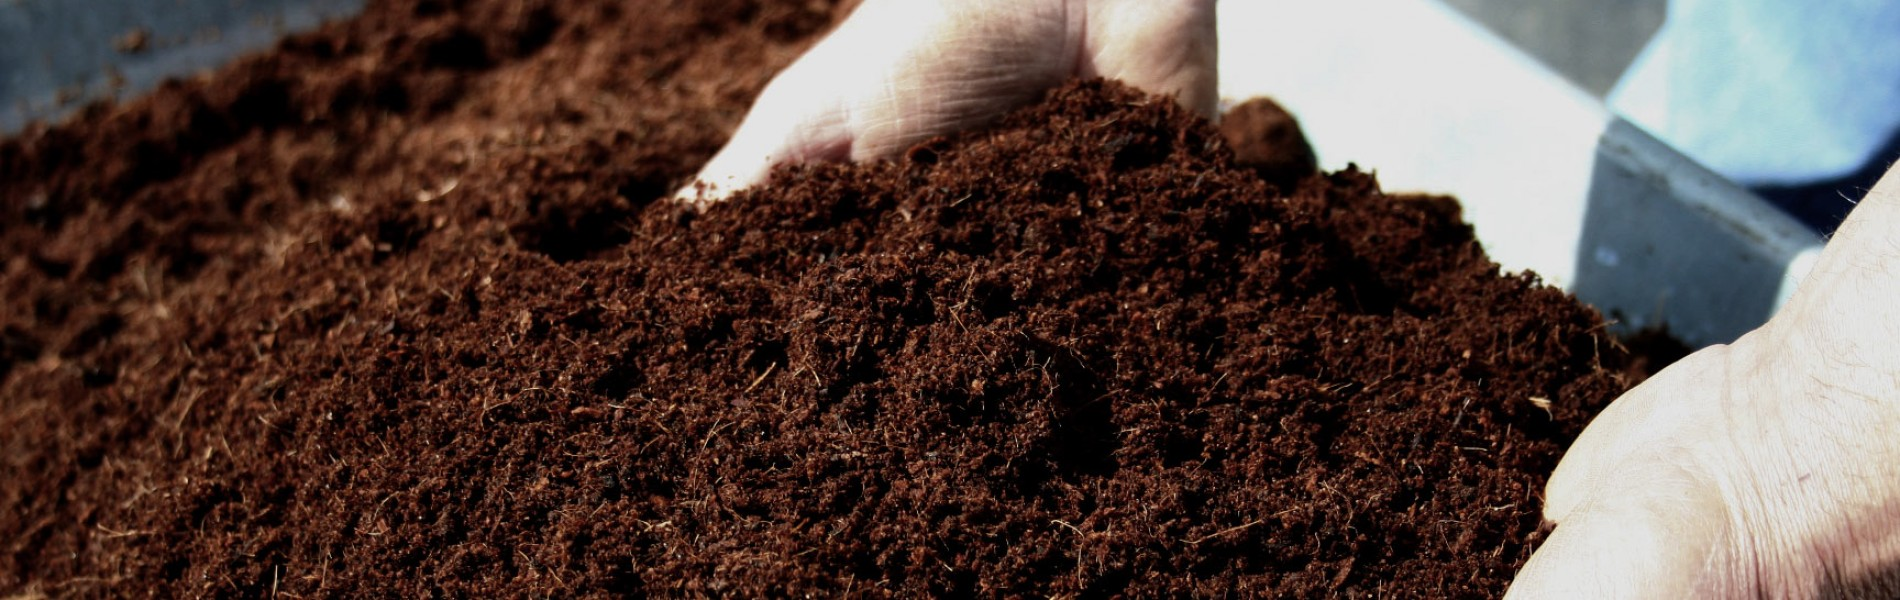 Give your soil biology a boost